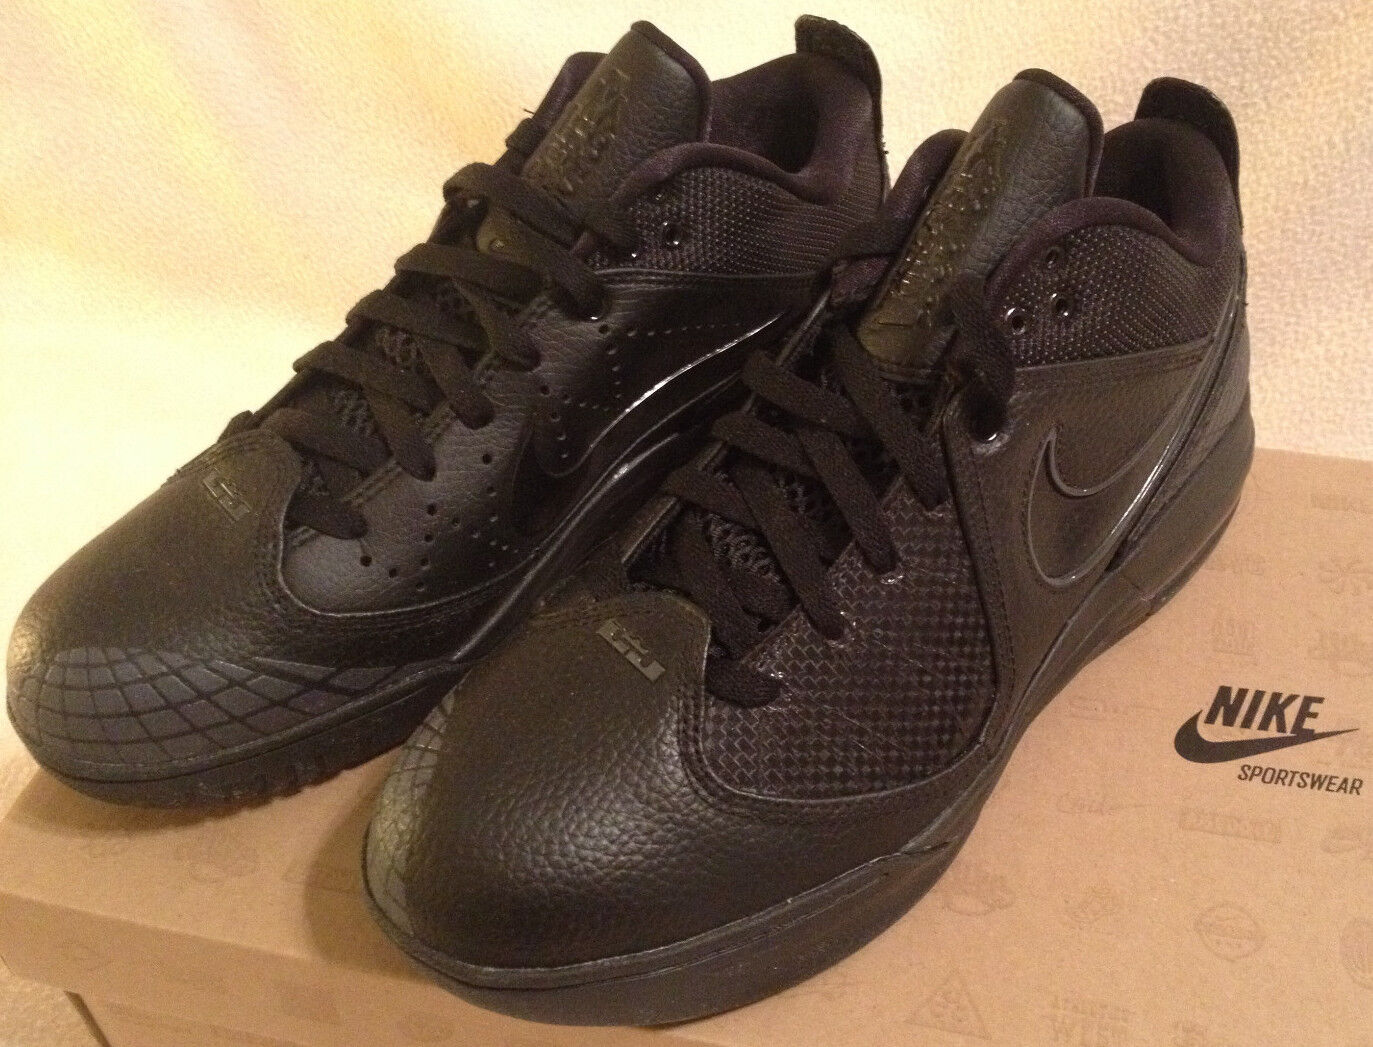 Nike Air Max Ambassador 4 IV 456815-001 Black Lebron Basketball Shoes Men's 9.5